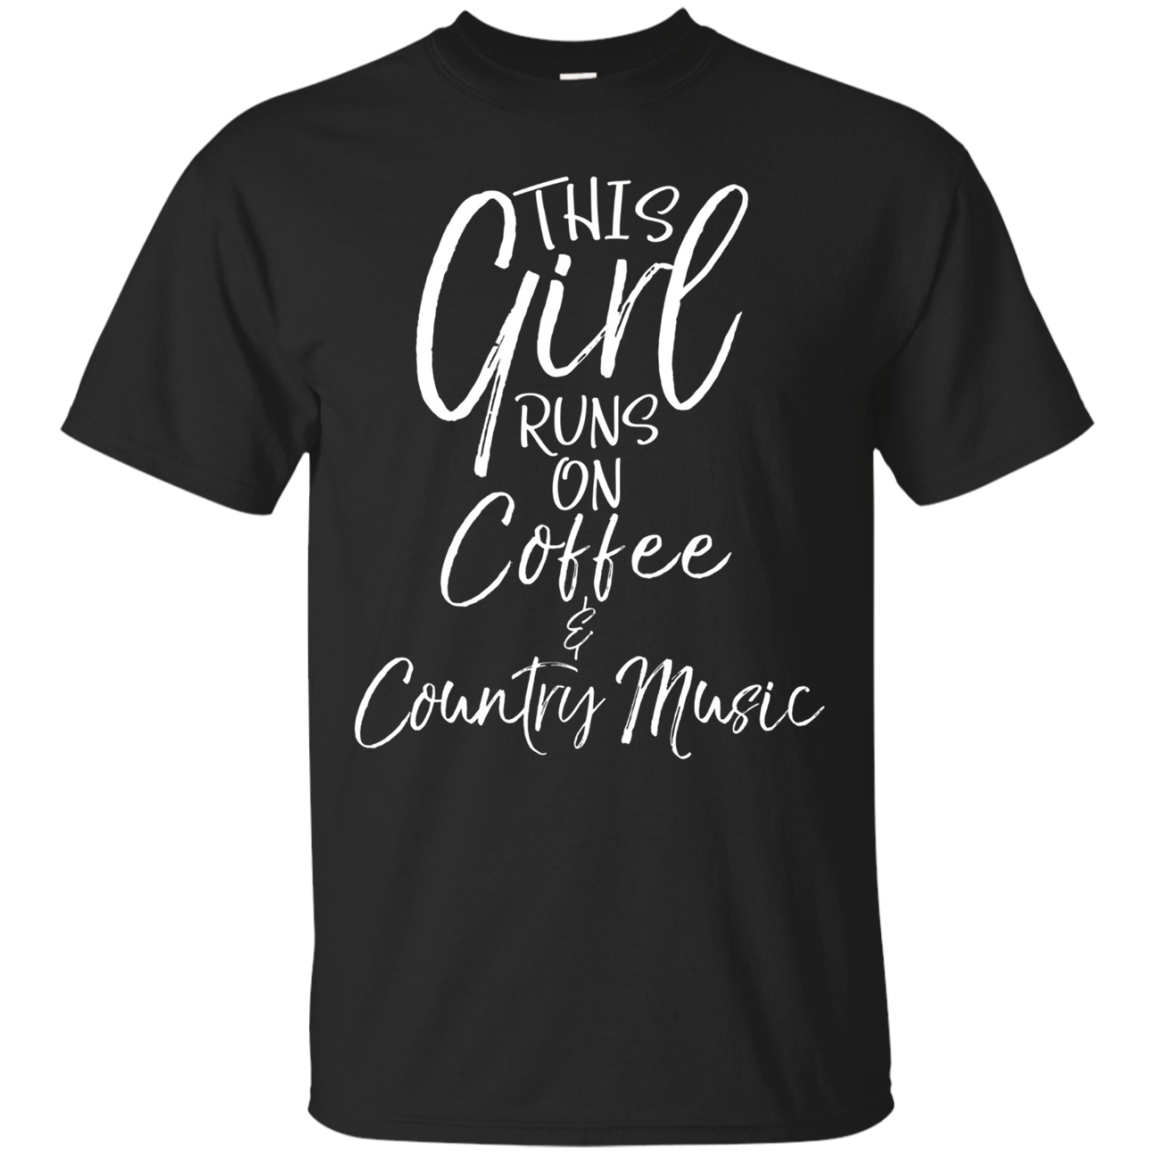 This Girl runs on Coffee & Country Music Shirt Cute Womens